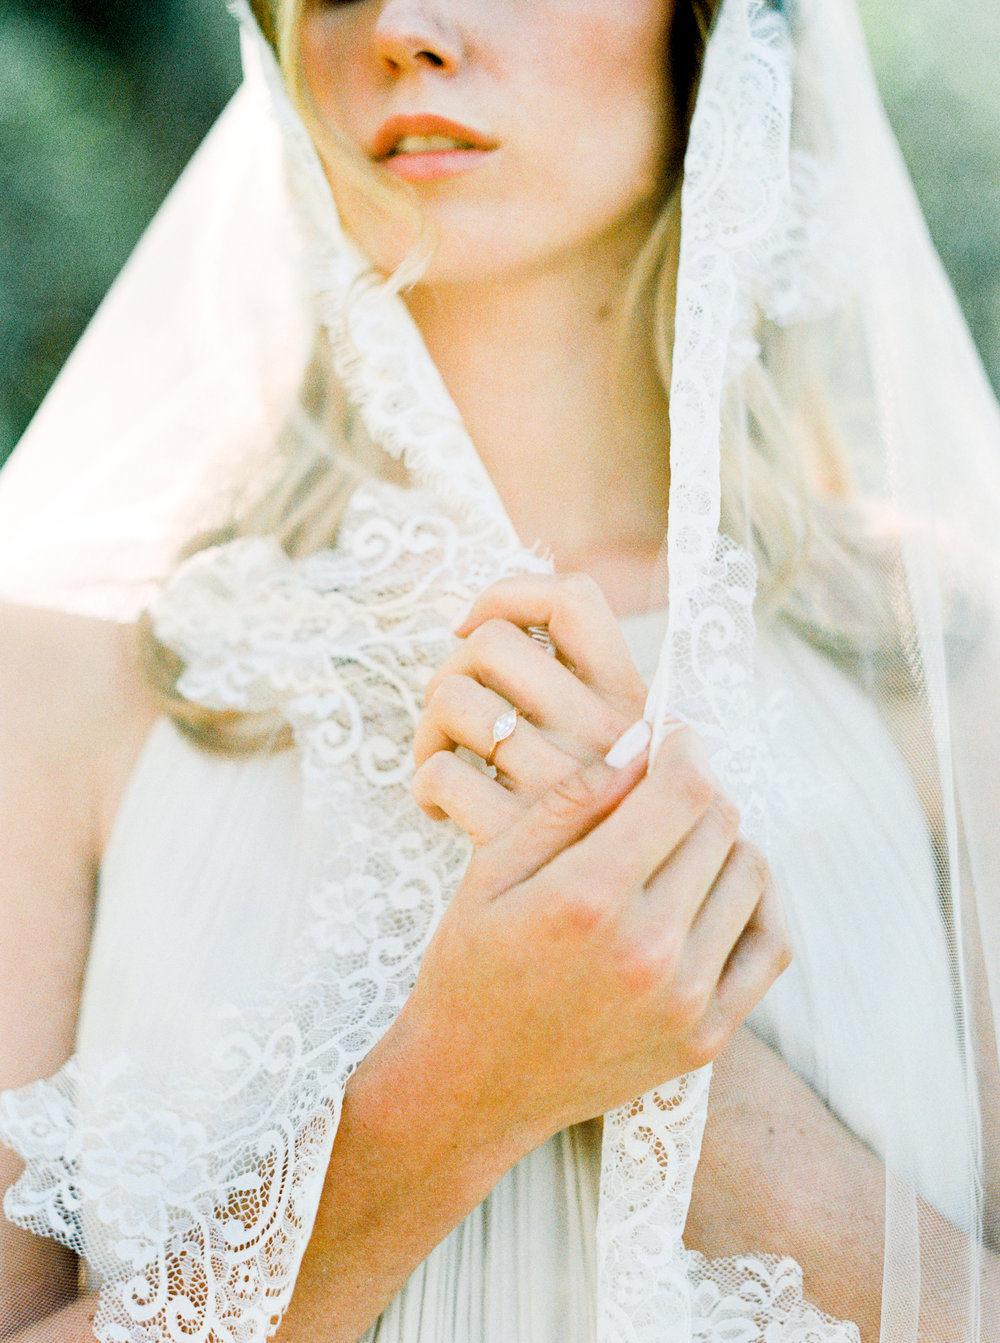 malibu_wedding_bride-34.jpg